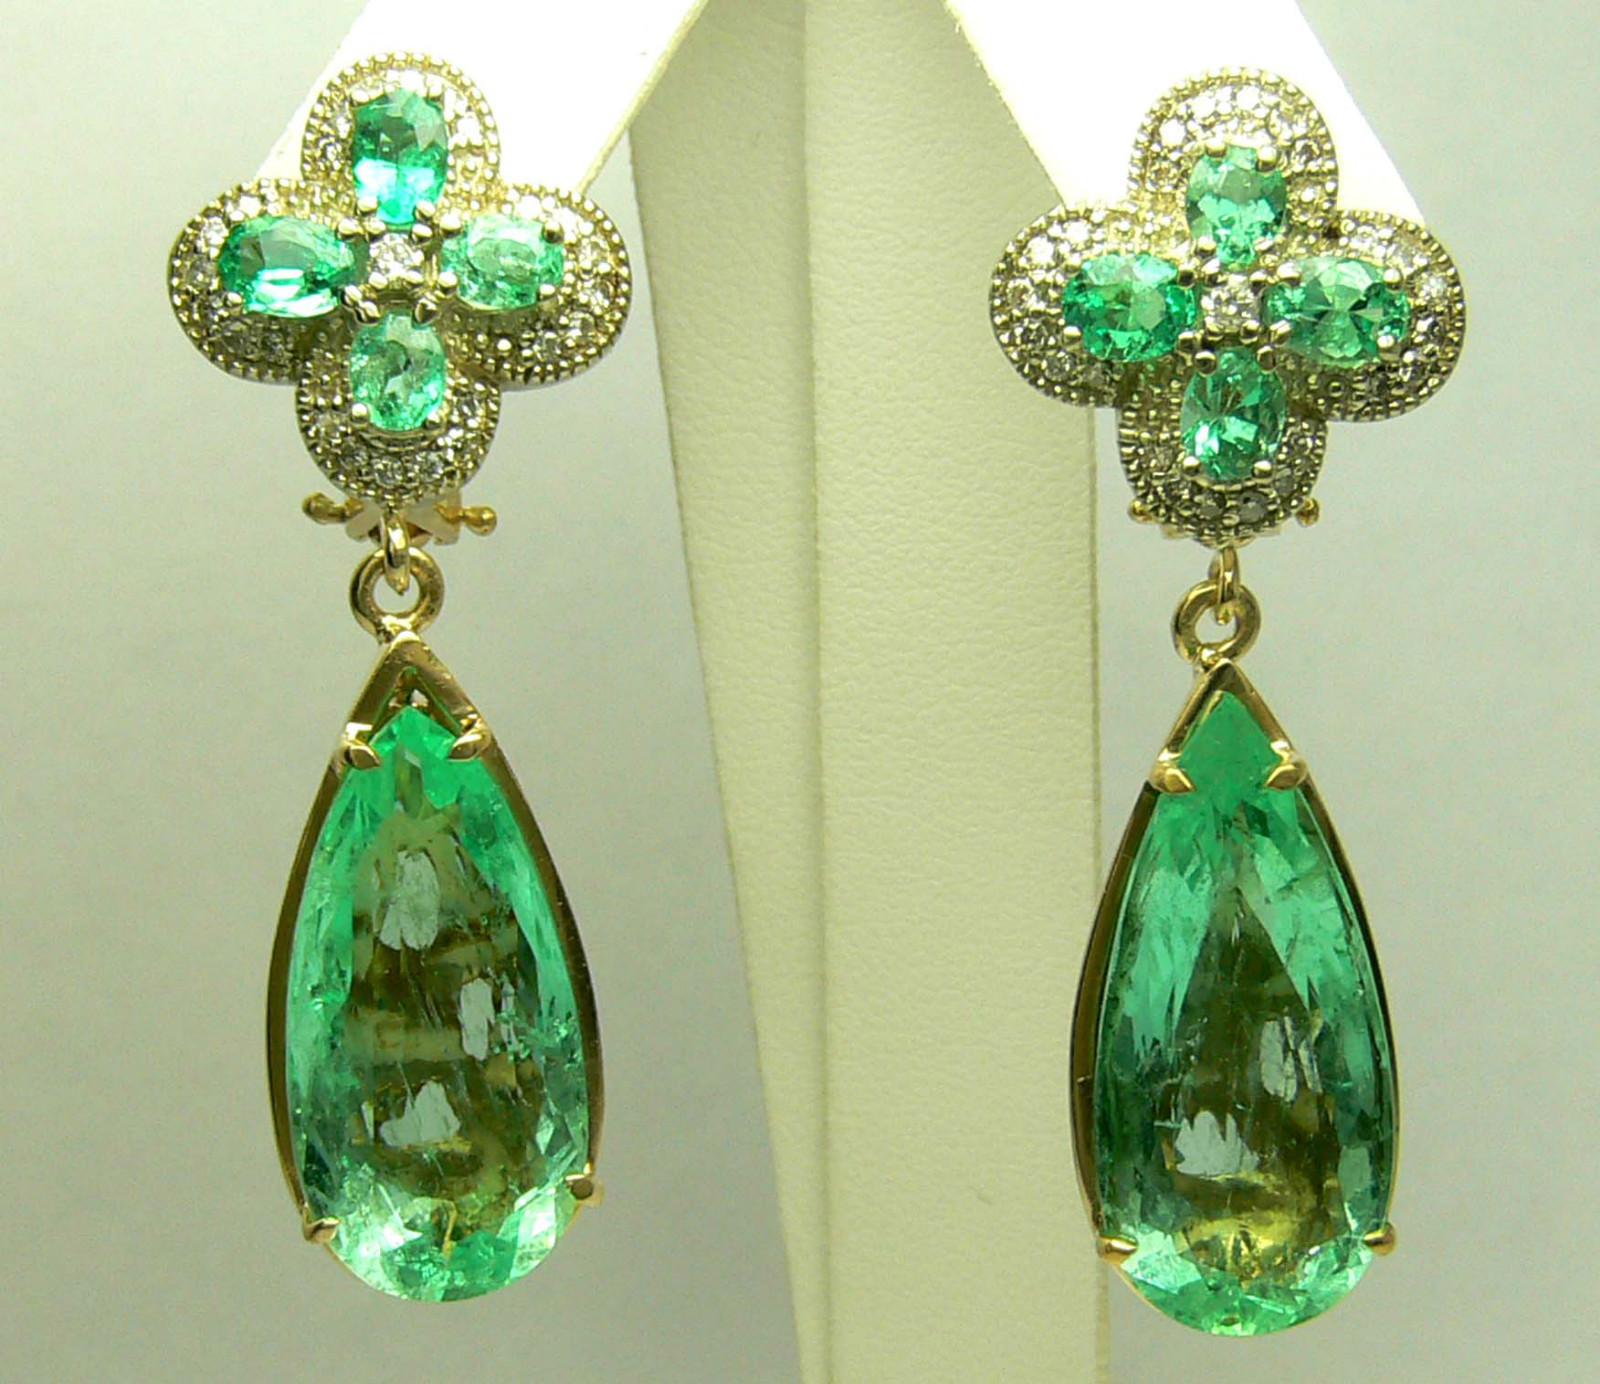 earrings designer earring natural gold mte product plated diamond gemstone jewelry emerald